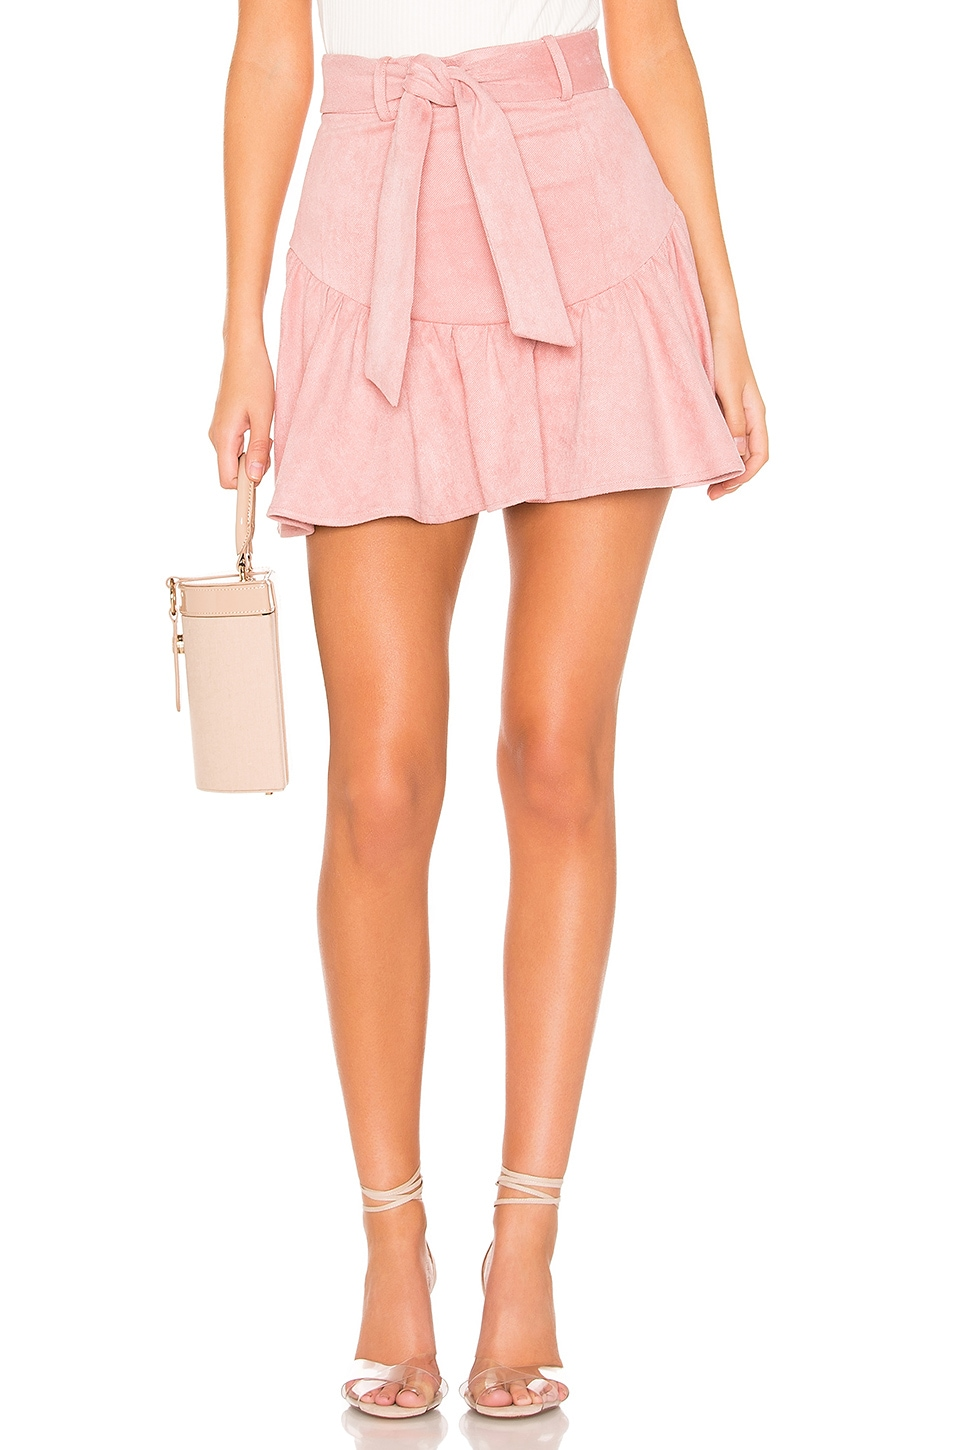 MAJORELLE Sami Mini Skirt in Pink Mauve